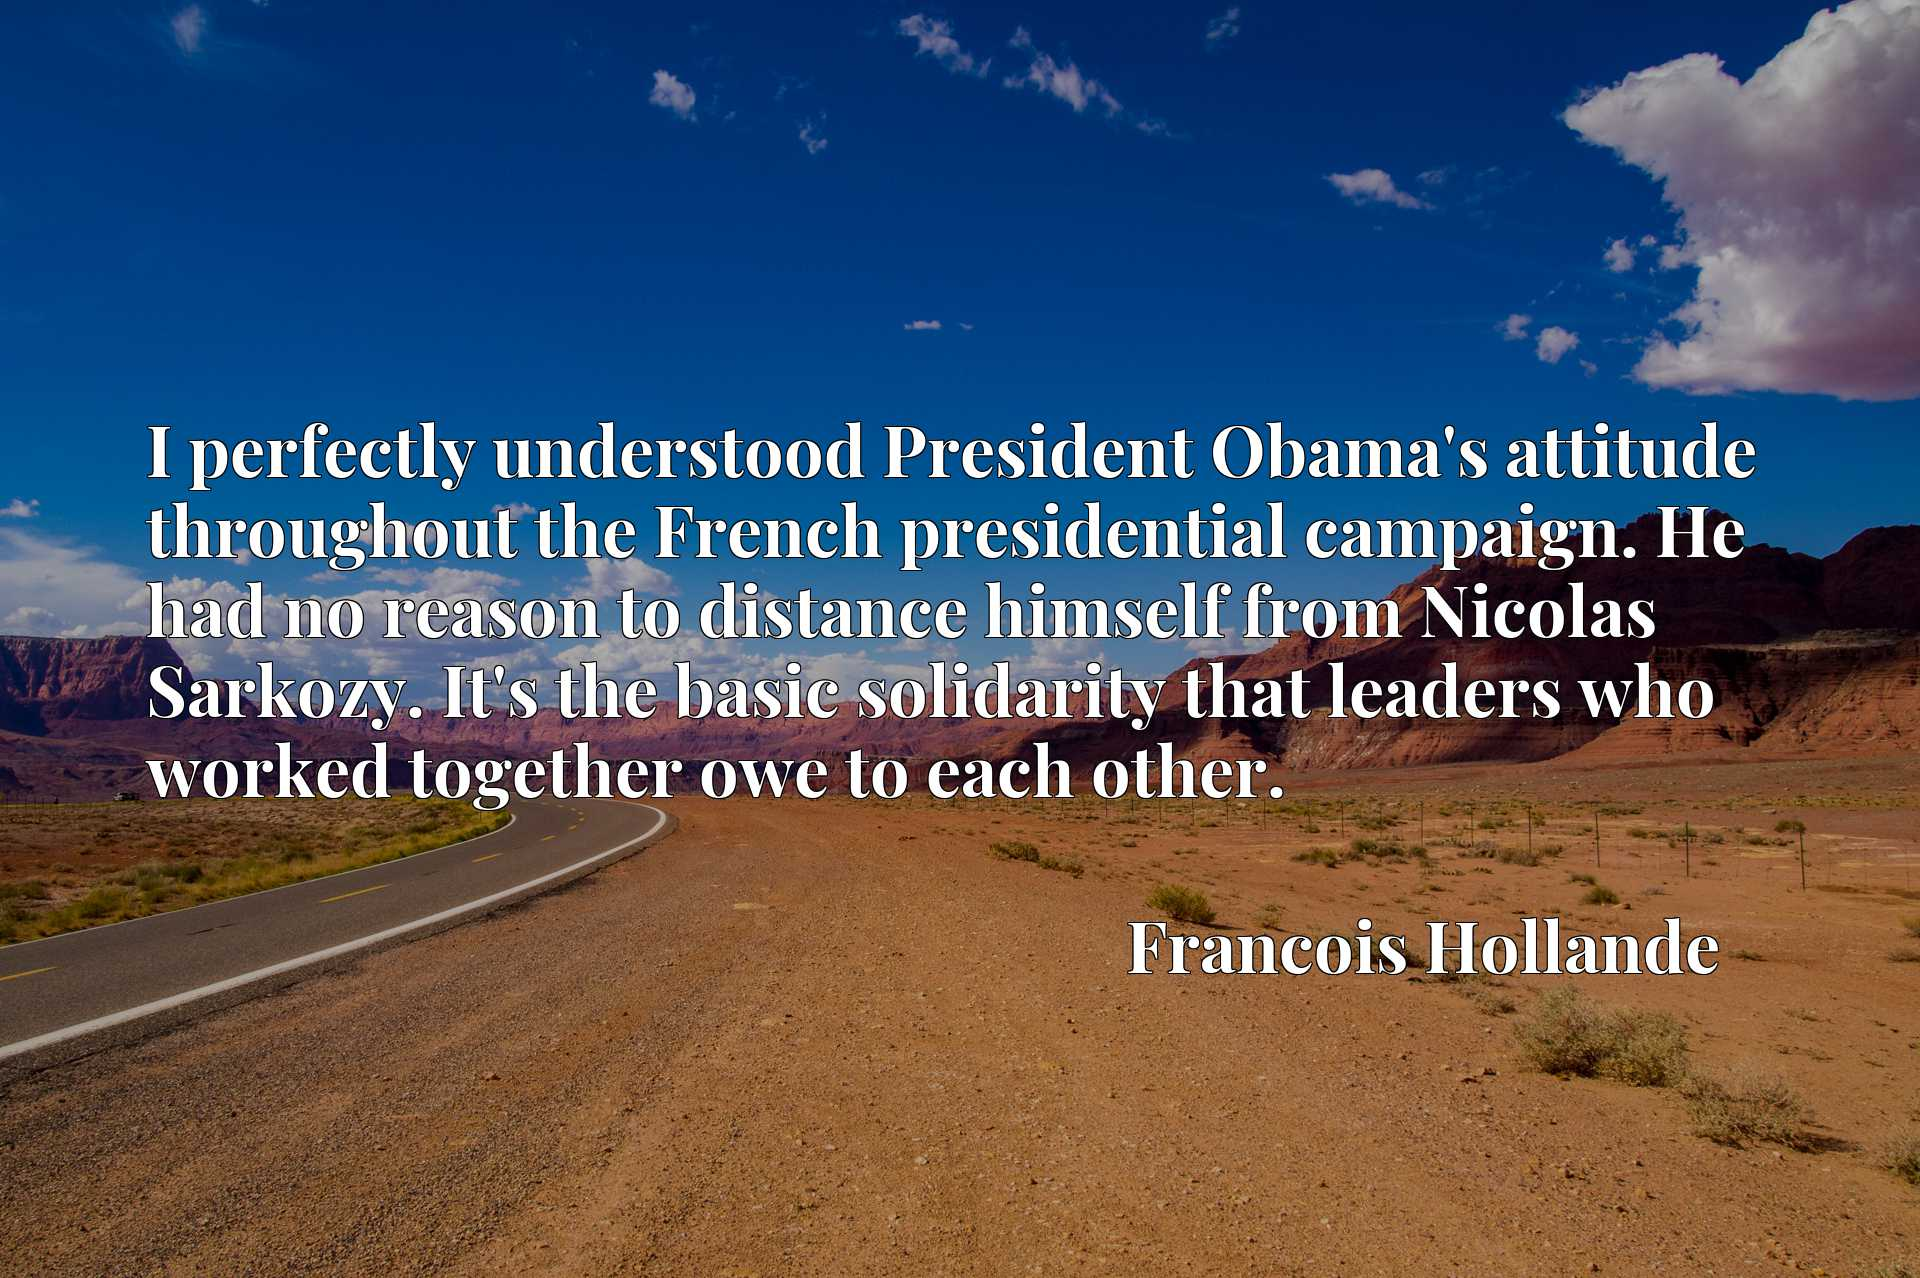 I perfectly understood President Obama's attitude throughout the French presidential campaign. He had no reason to distance himself from Nicolas Sarkozy. It's the basic solidarity that leaders who worked together owe to each other.